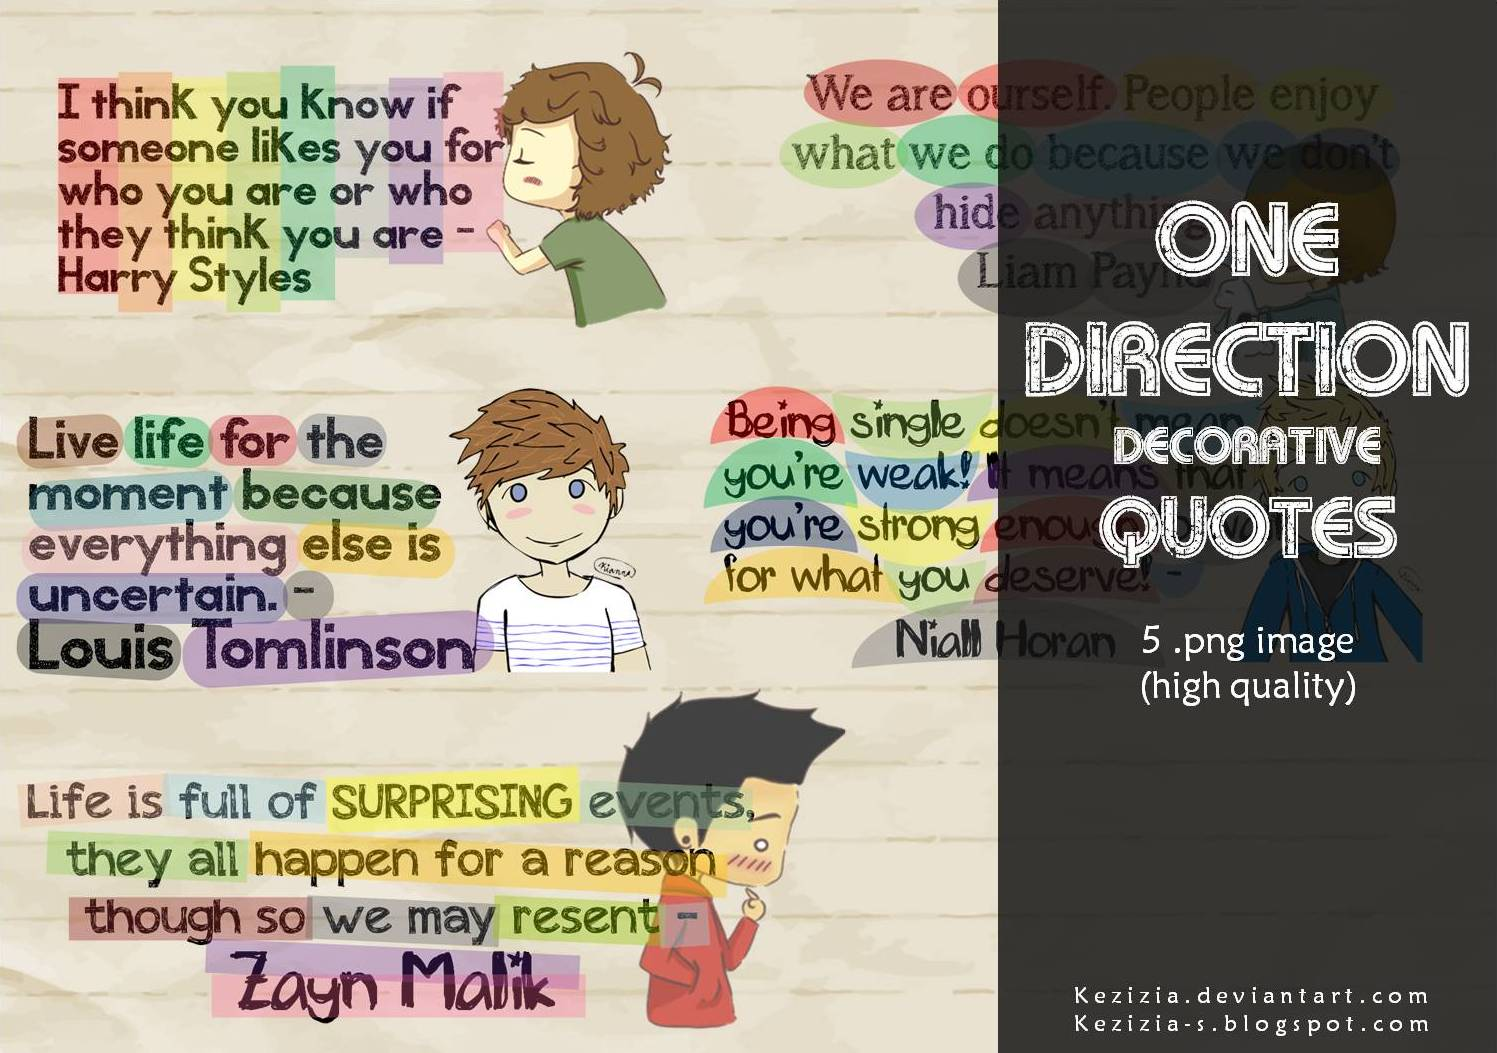 One Direction Song Quotes Picture Inspirational Quotes F...